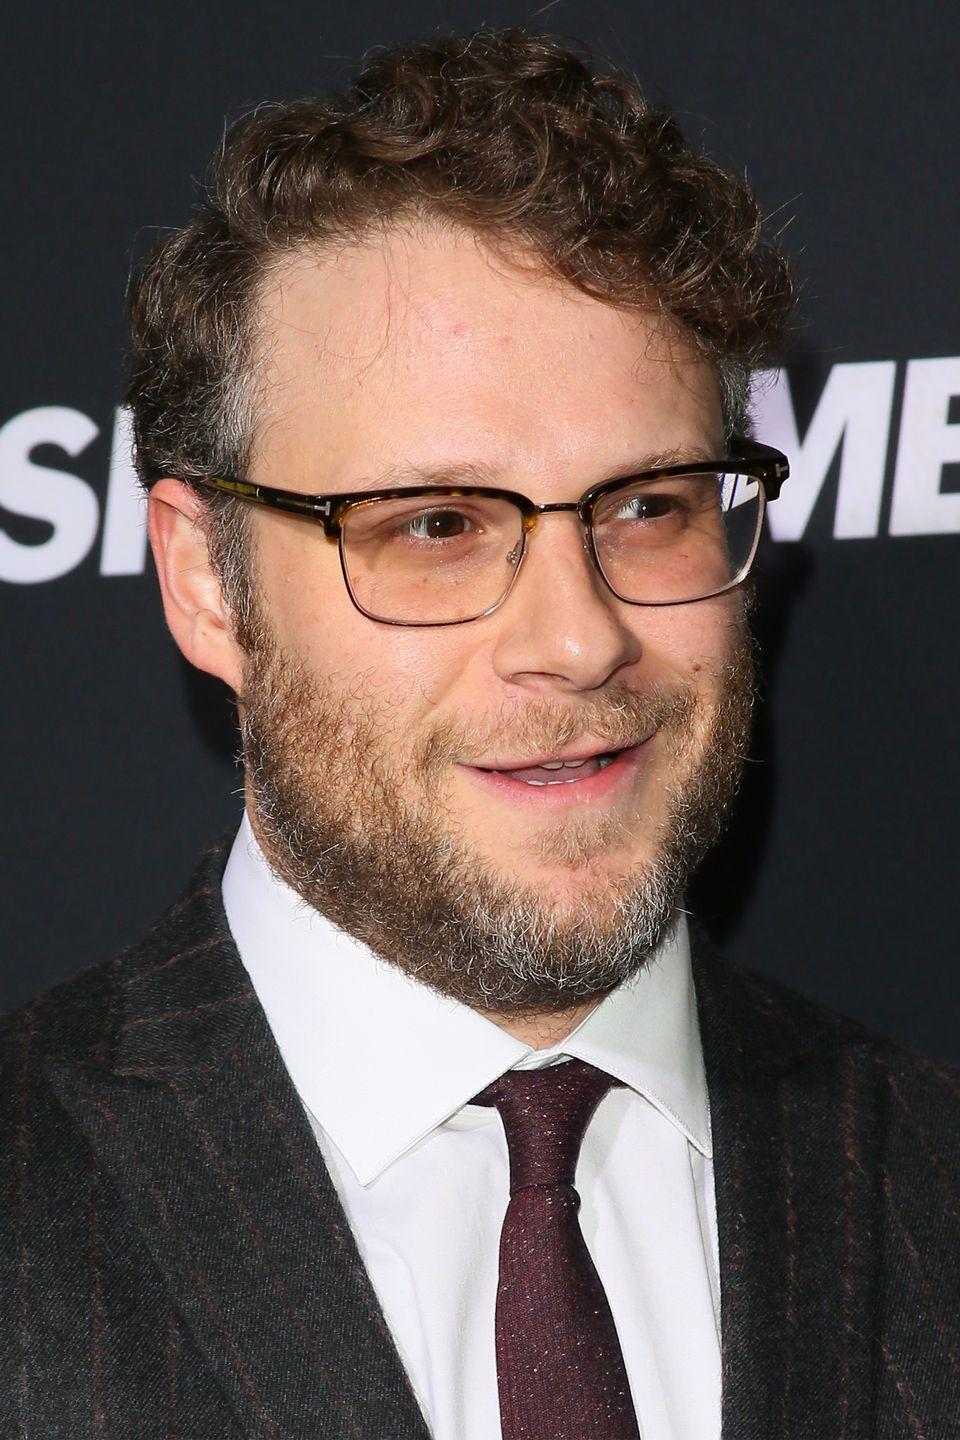 "<p>Rogen <a href=""http://www.eonline.com/photos/9003/high-school-dropouts/289936"" rel=""nofollow noopener"" target=""_blank"" data-ylk=""slk:dropped out"" class=""link rapid-noclick-resp"">dropped out</a> of high school and moved to Los Angeles to pursue comedy instead. He went on to star in <em>Superbad</em>, and is now one of Hollywood's favorite funny guys. </p>"